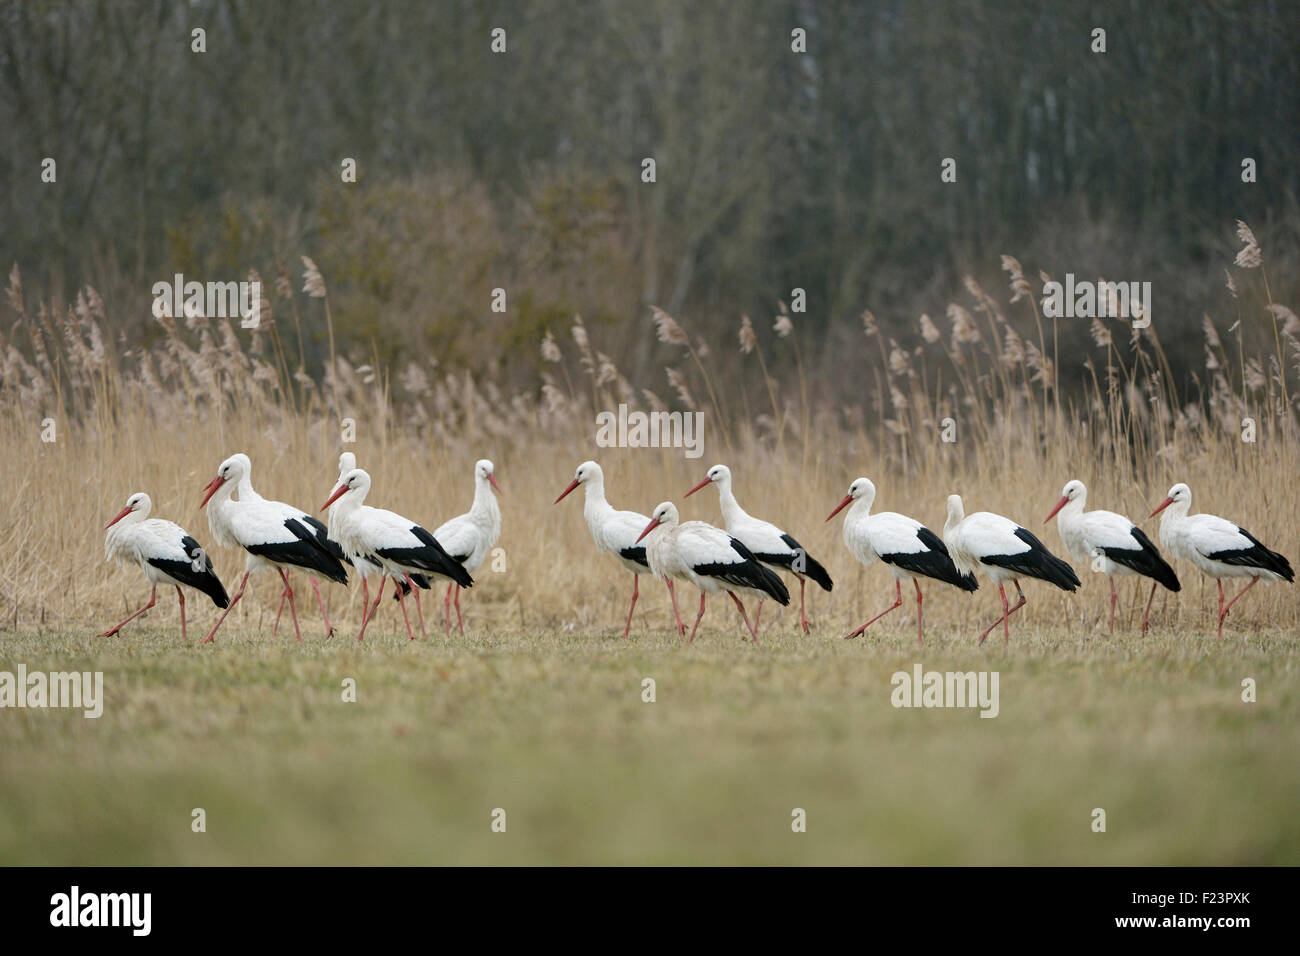 A flock of White Storks / Weissstörche ( Ciconia ciconia ) gathering in beautiful natural surrounding. Stock Photo